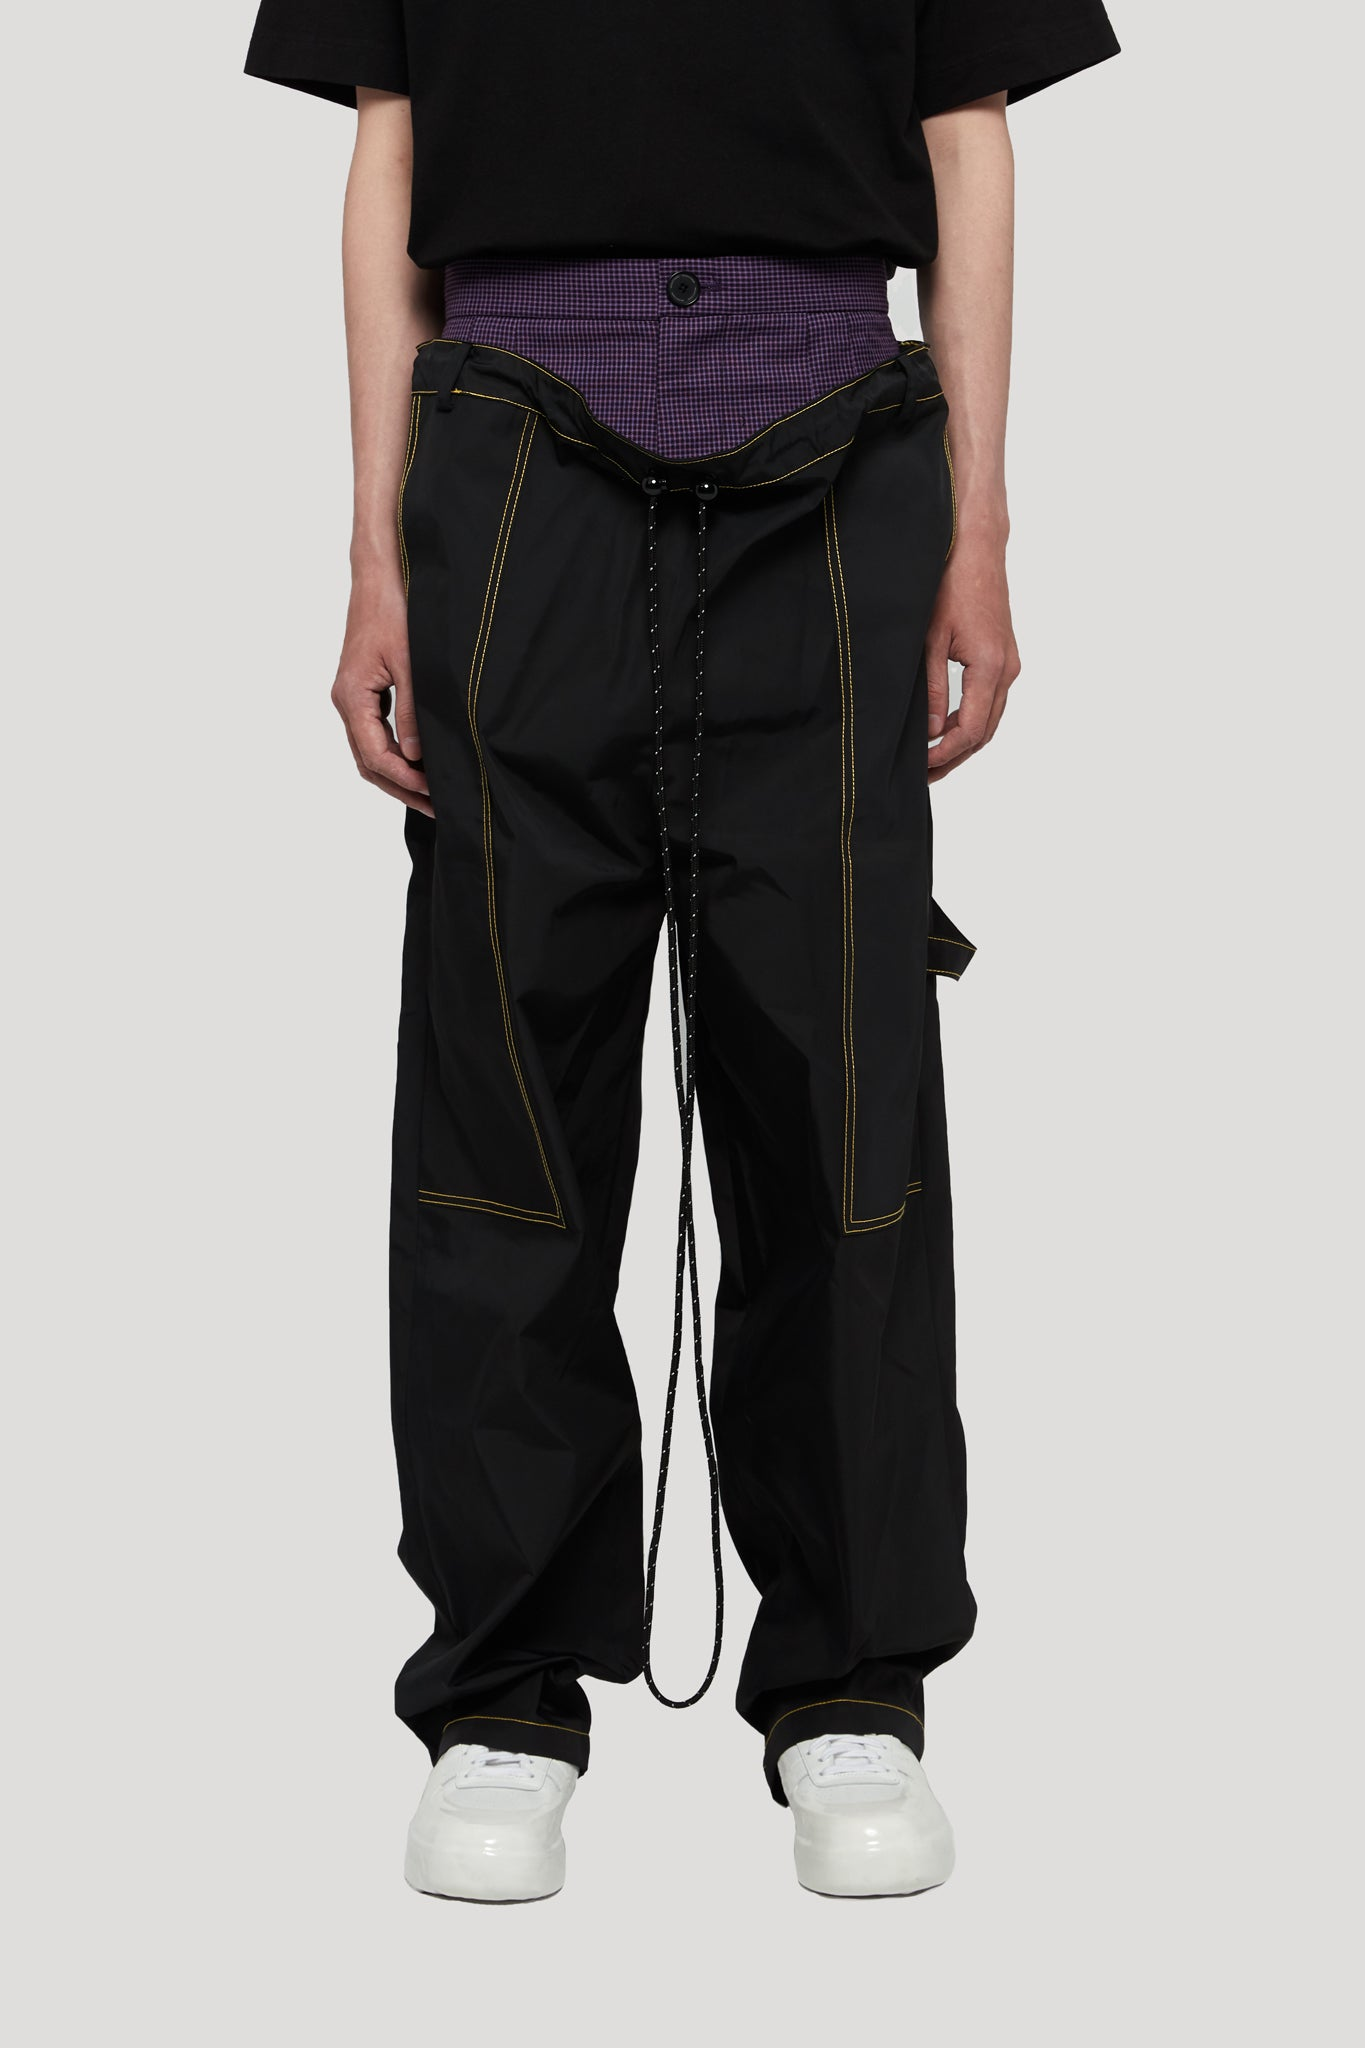 RogerDropped Double Layer Worker Trouser Tory black + violet